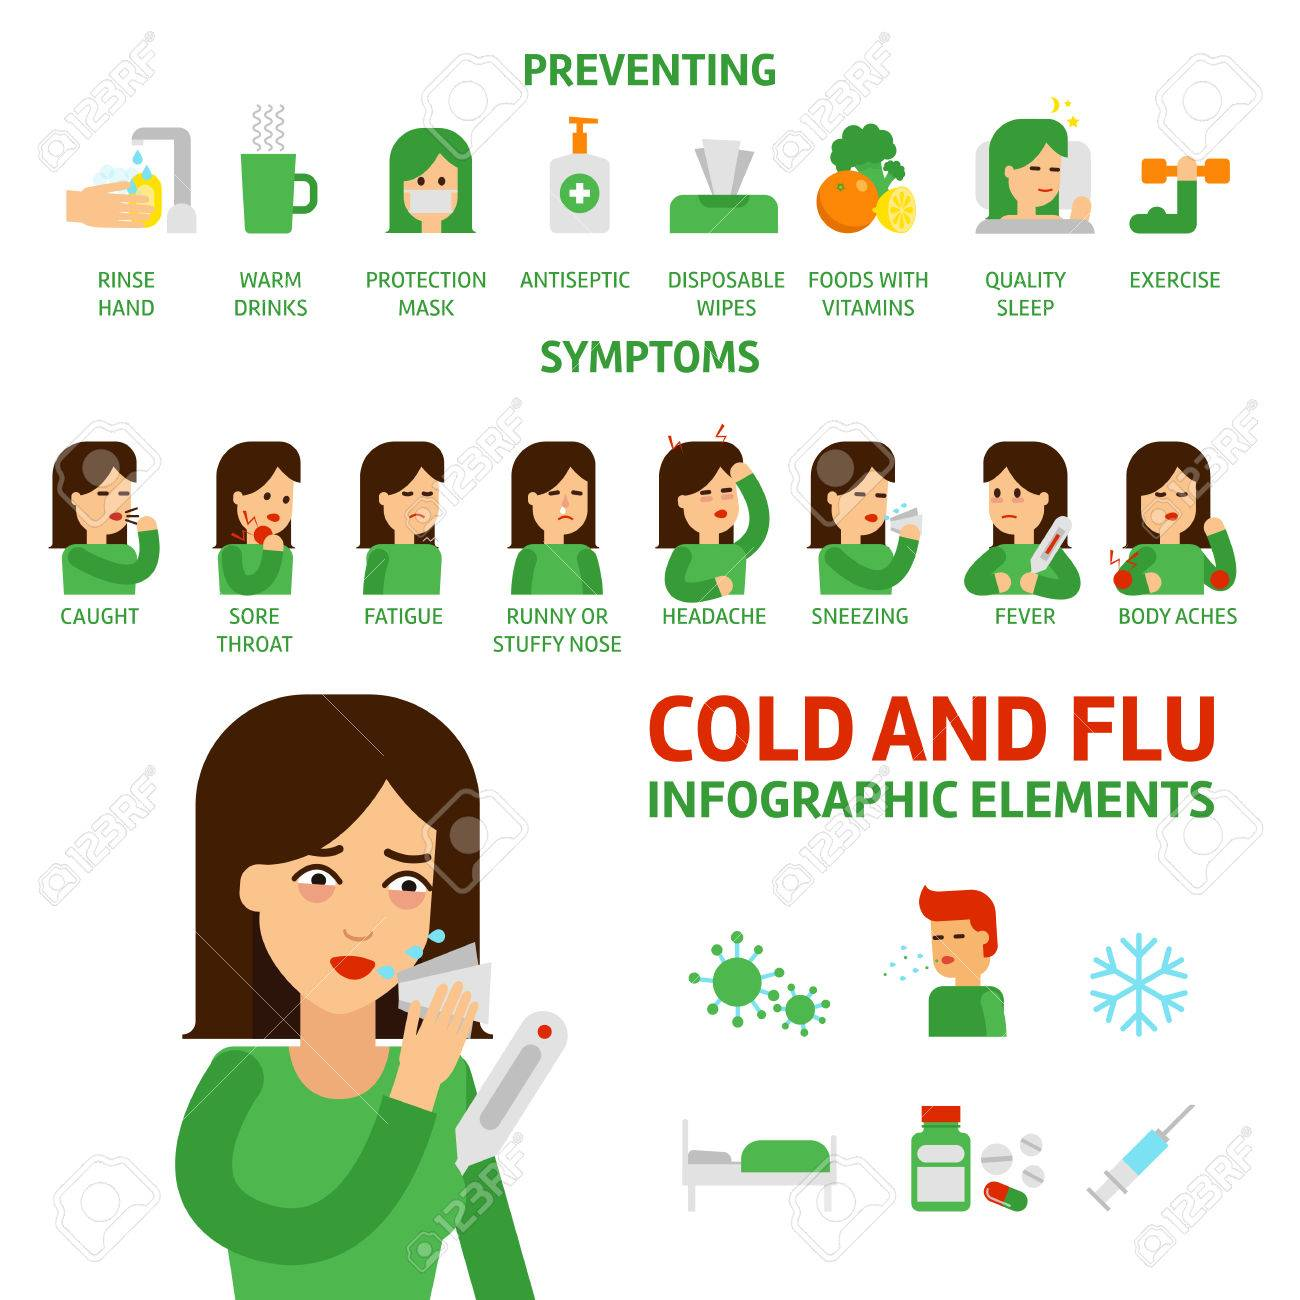 Flu and common cold infographic elements. Prevention, symptoms...